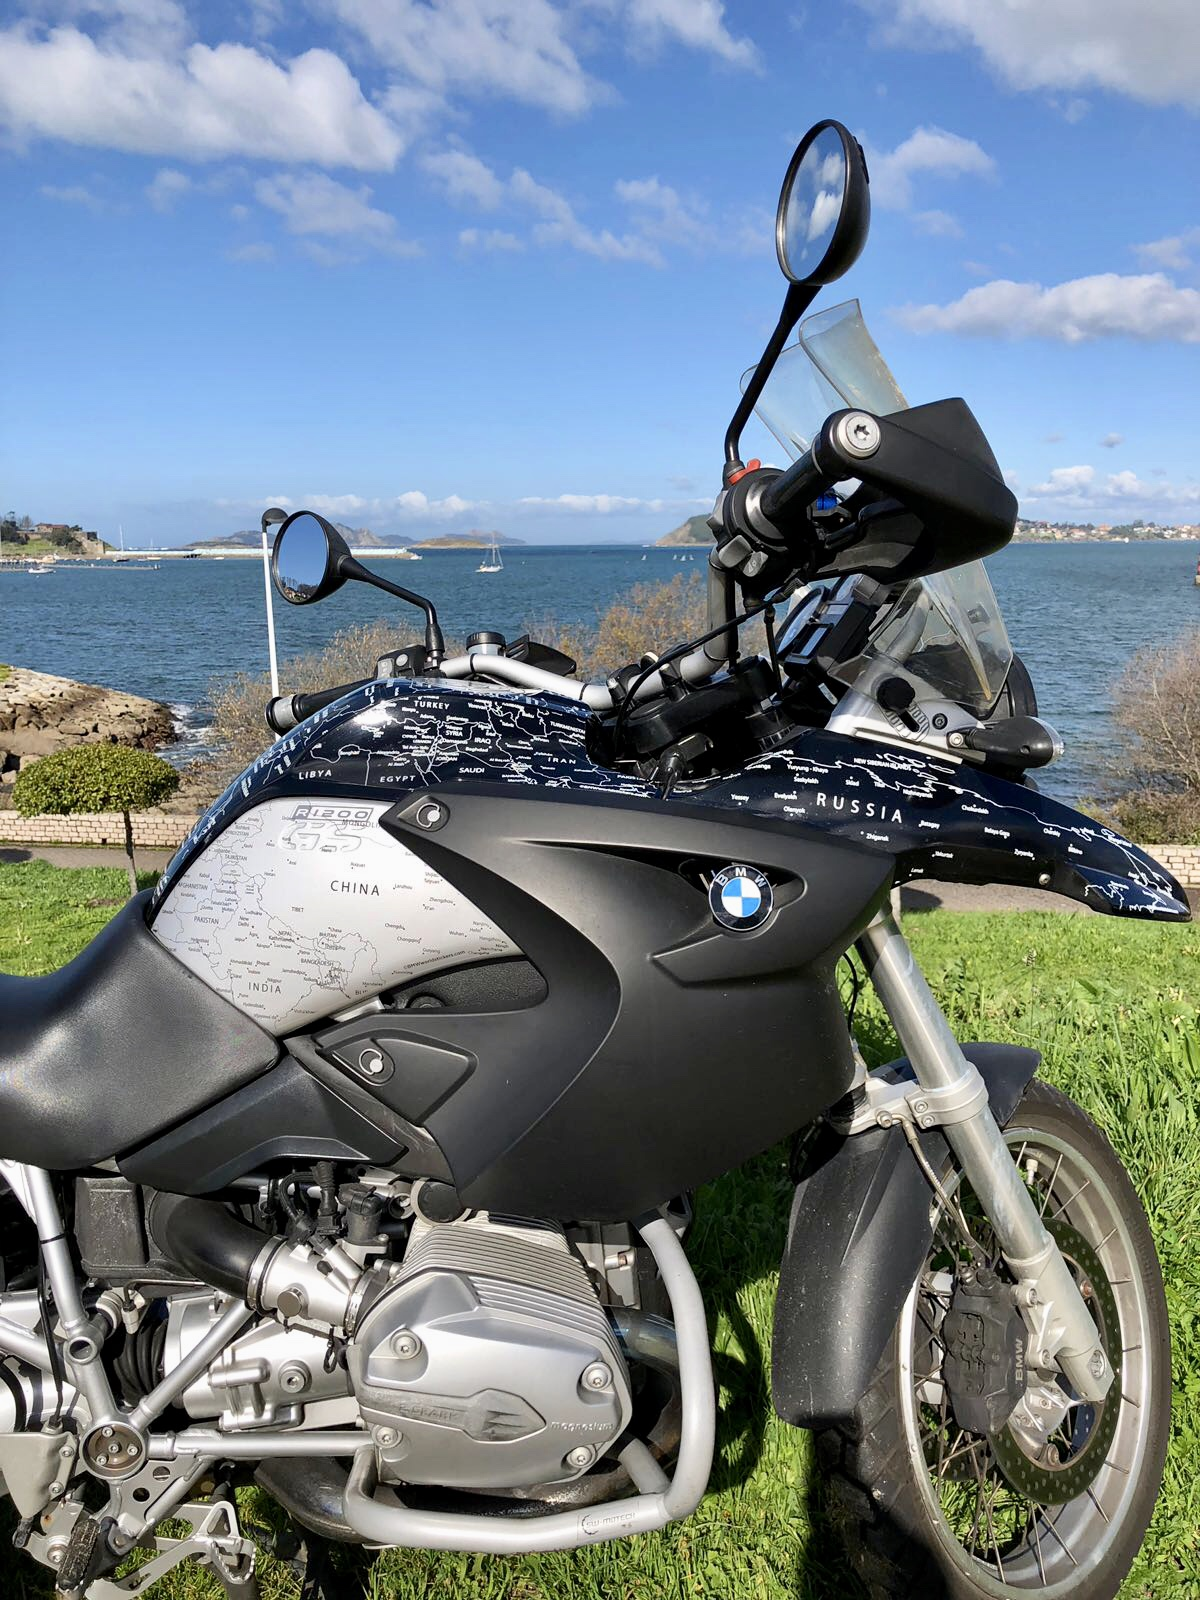 R1200GS 2004 to 2007